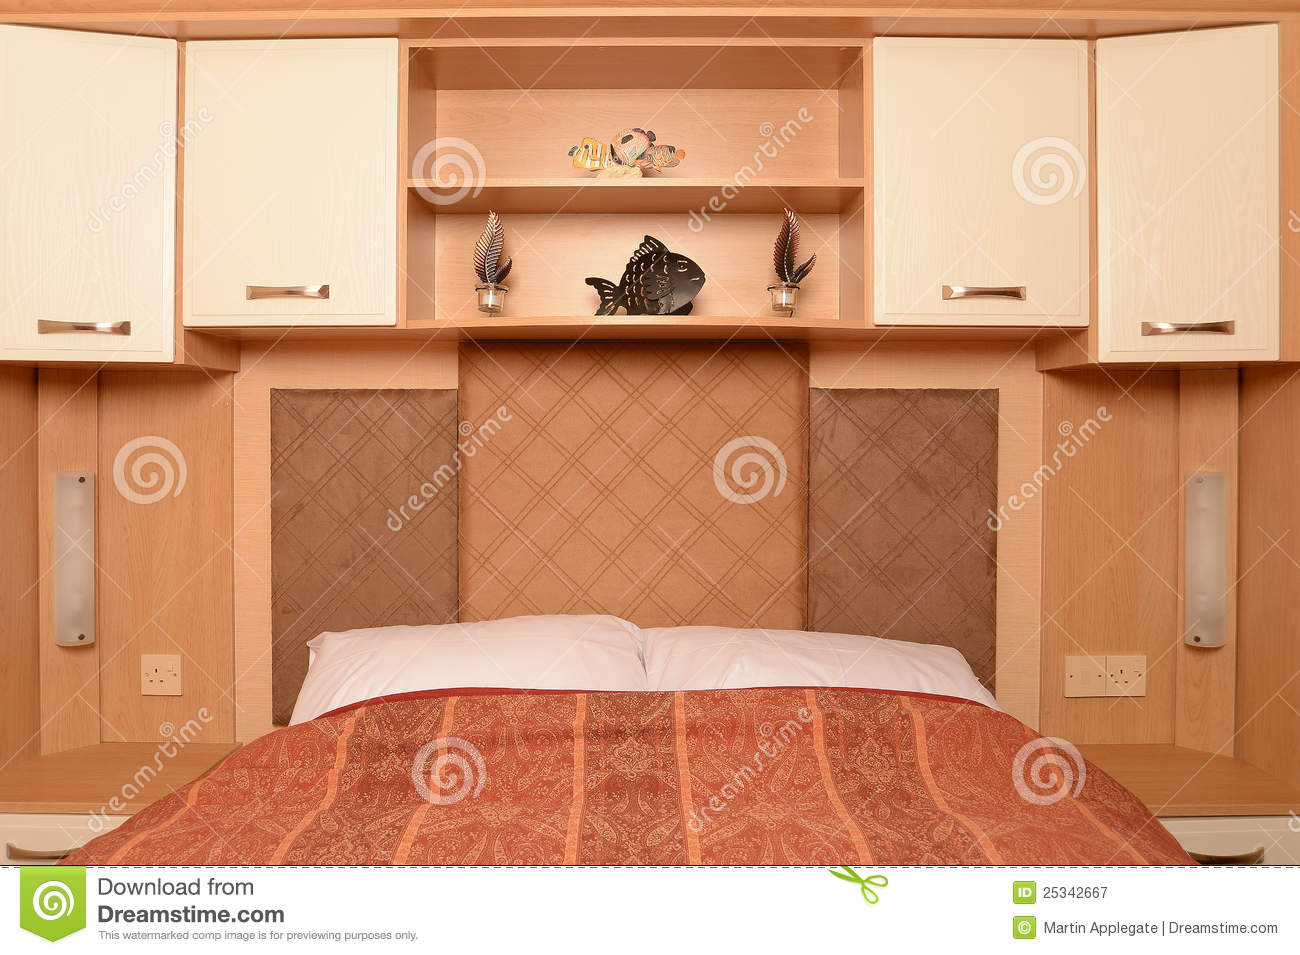 Bed With Shelves And Cabinets Royalty Free Stock Photography Image 25342667